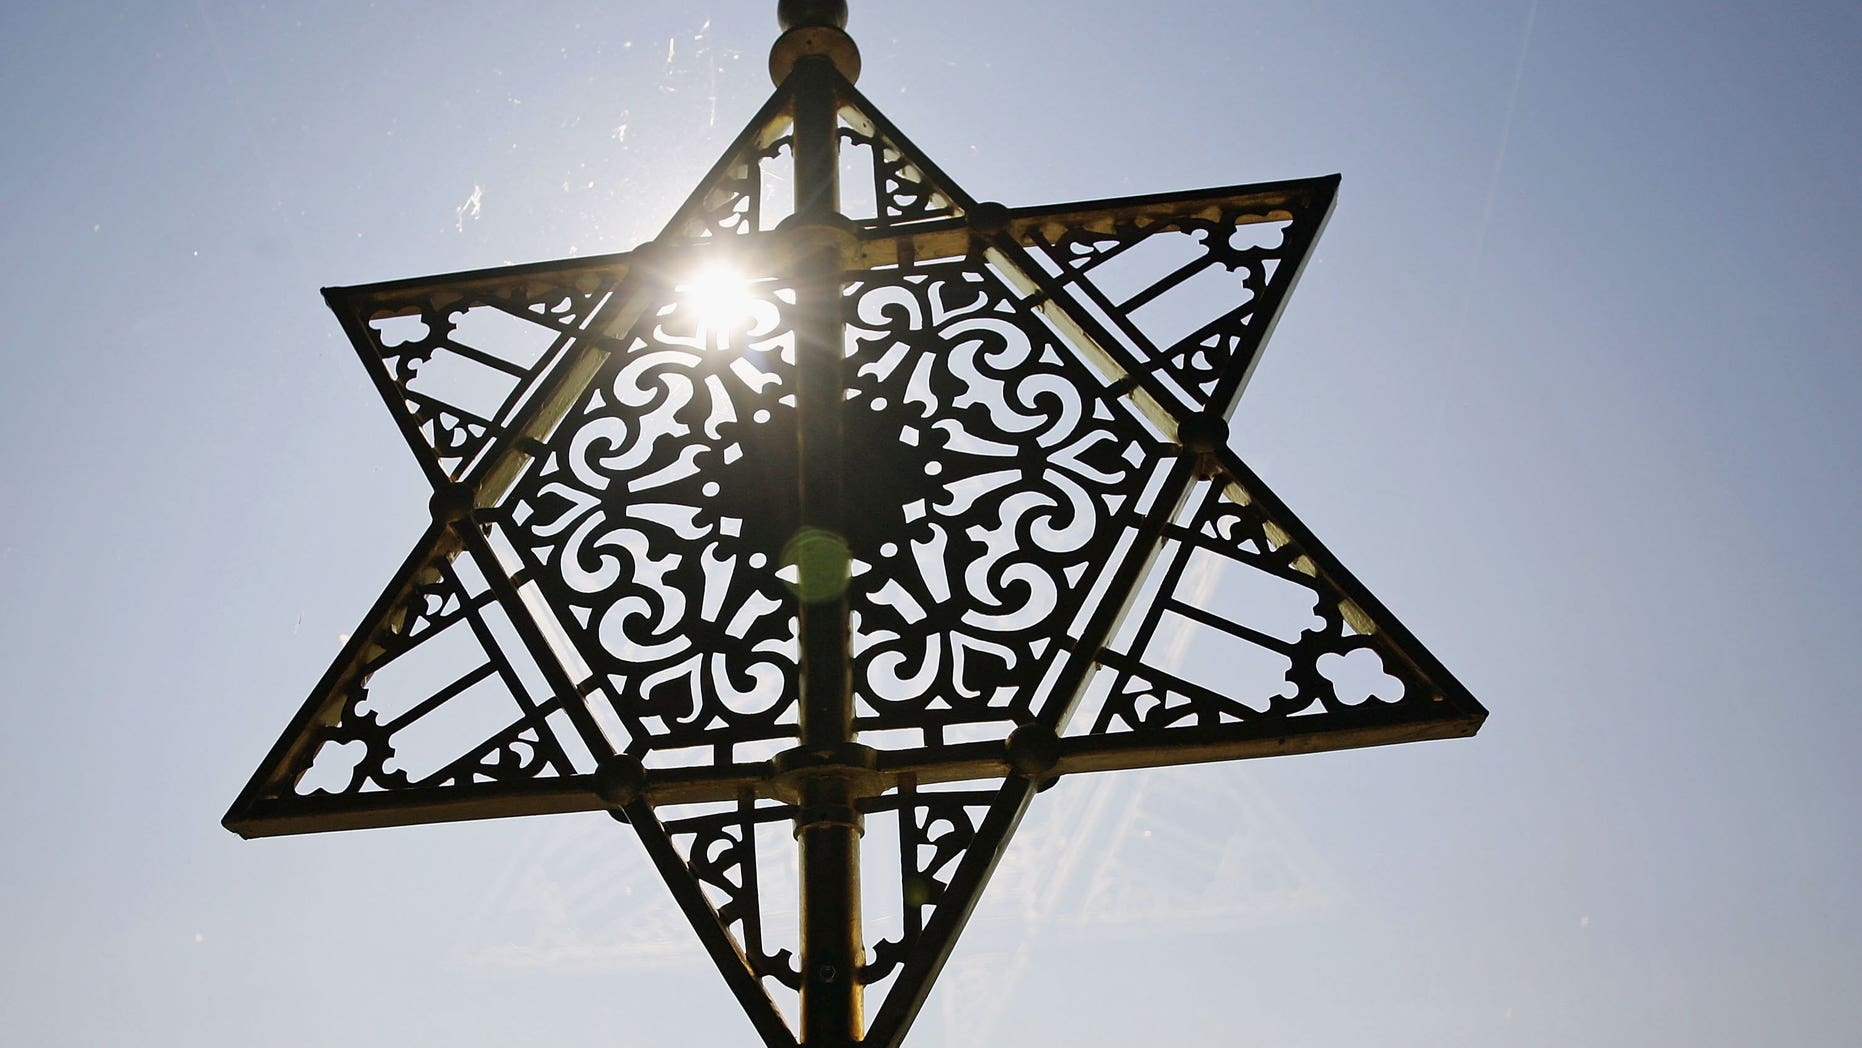 """DRESDEN, GERMANY - SEPTEMBER 14: The Star of David is seen over the entrance of the New Synagoge at the ordination of new rabbis on September 14, 2006 in Dresden, Germany. Abraham Geiger College, the first liberal rabbinical seminary founded in Continental Europe since World War II, ordains the first three candidates as rabbis since the """"Hochschule fuer die Wissenschaft des Judentums"""" in Berlin was forcefully closed in 1942. The three newly ordained rabbis will become members of the Central Conference of American Rabbis and will serve communities in Munich, Oldenburg and Cape Town. (Photo by Carsten Koall/Getty Images)"""